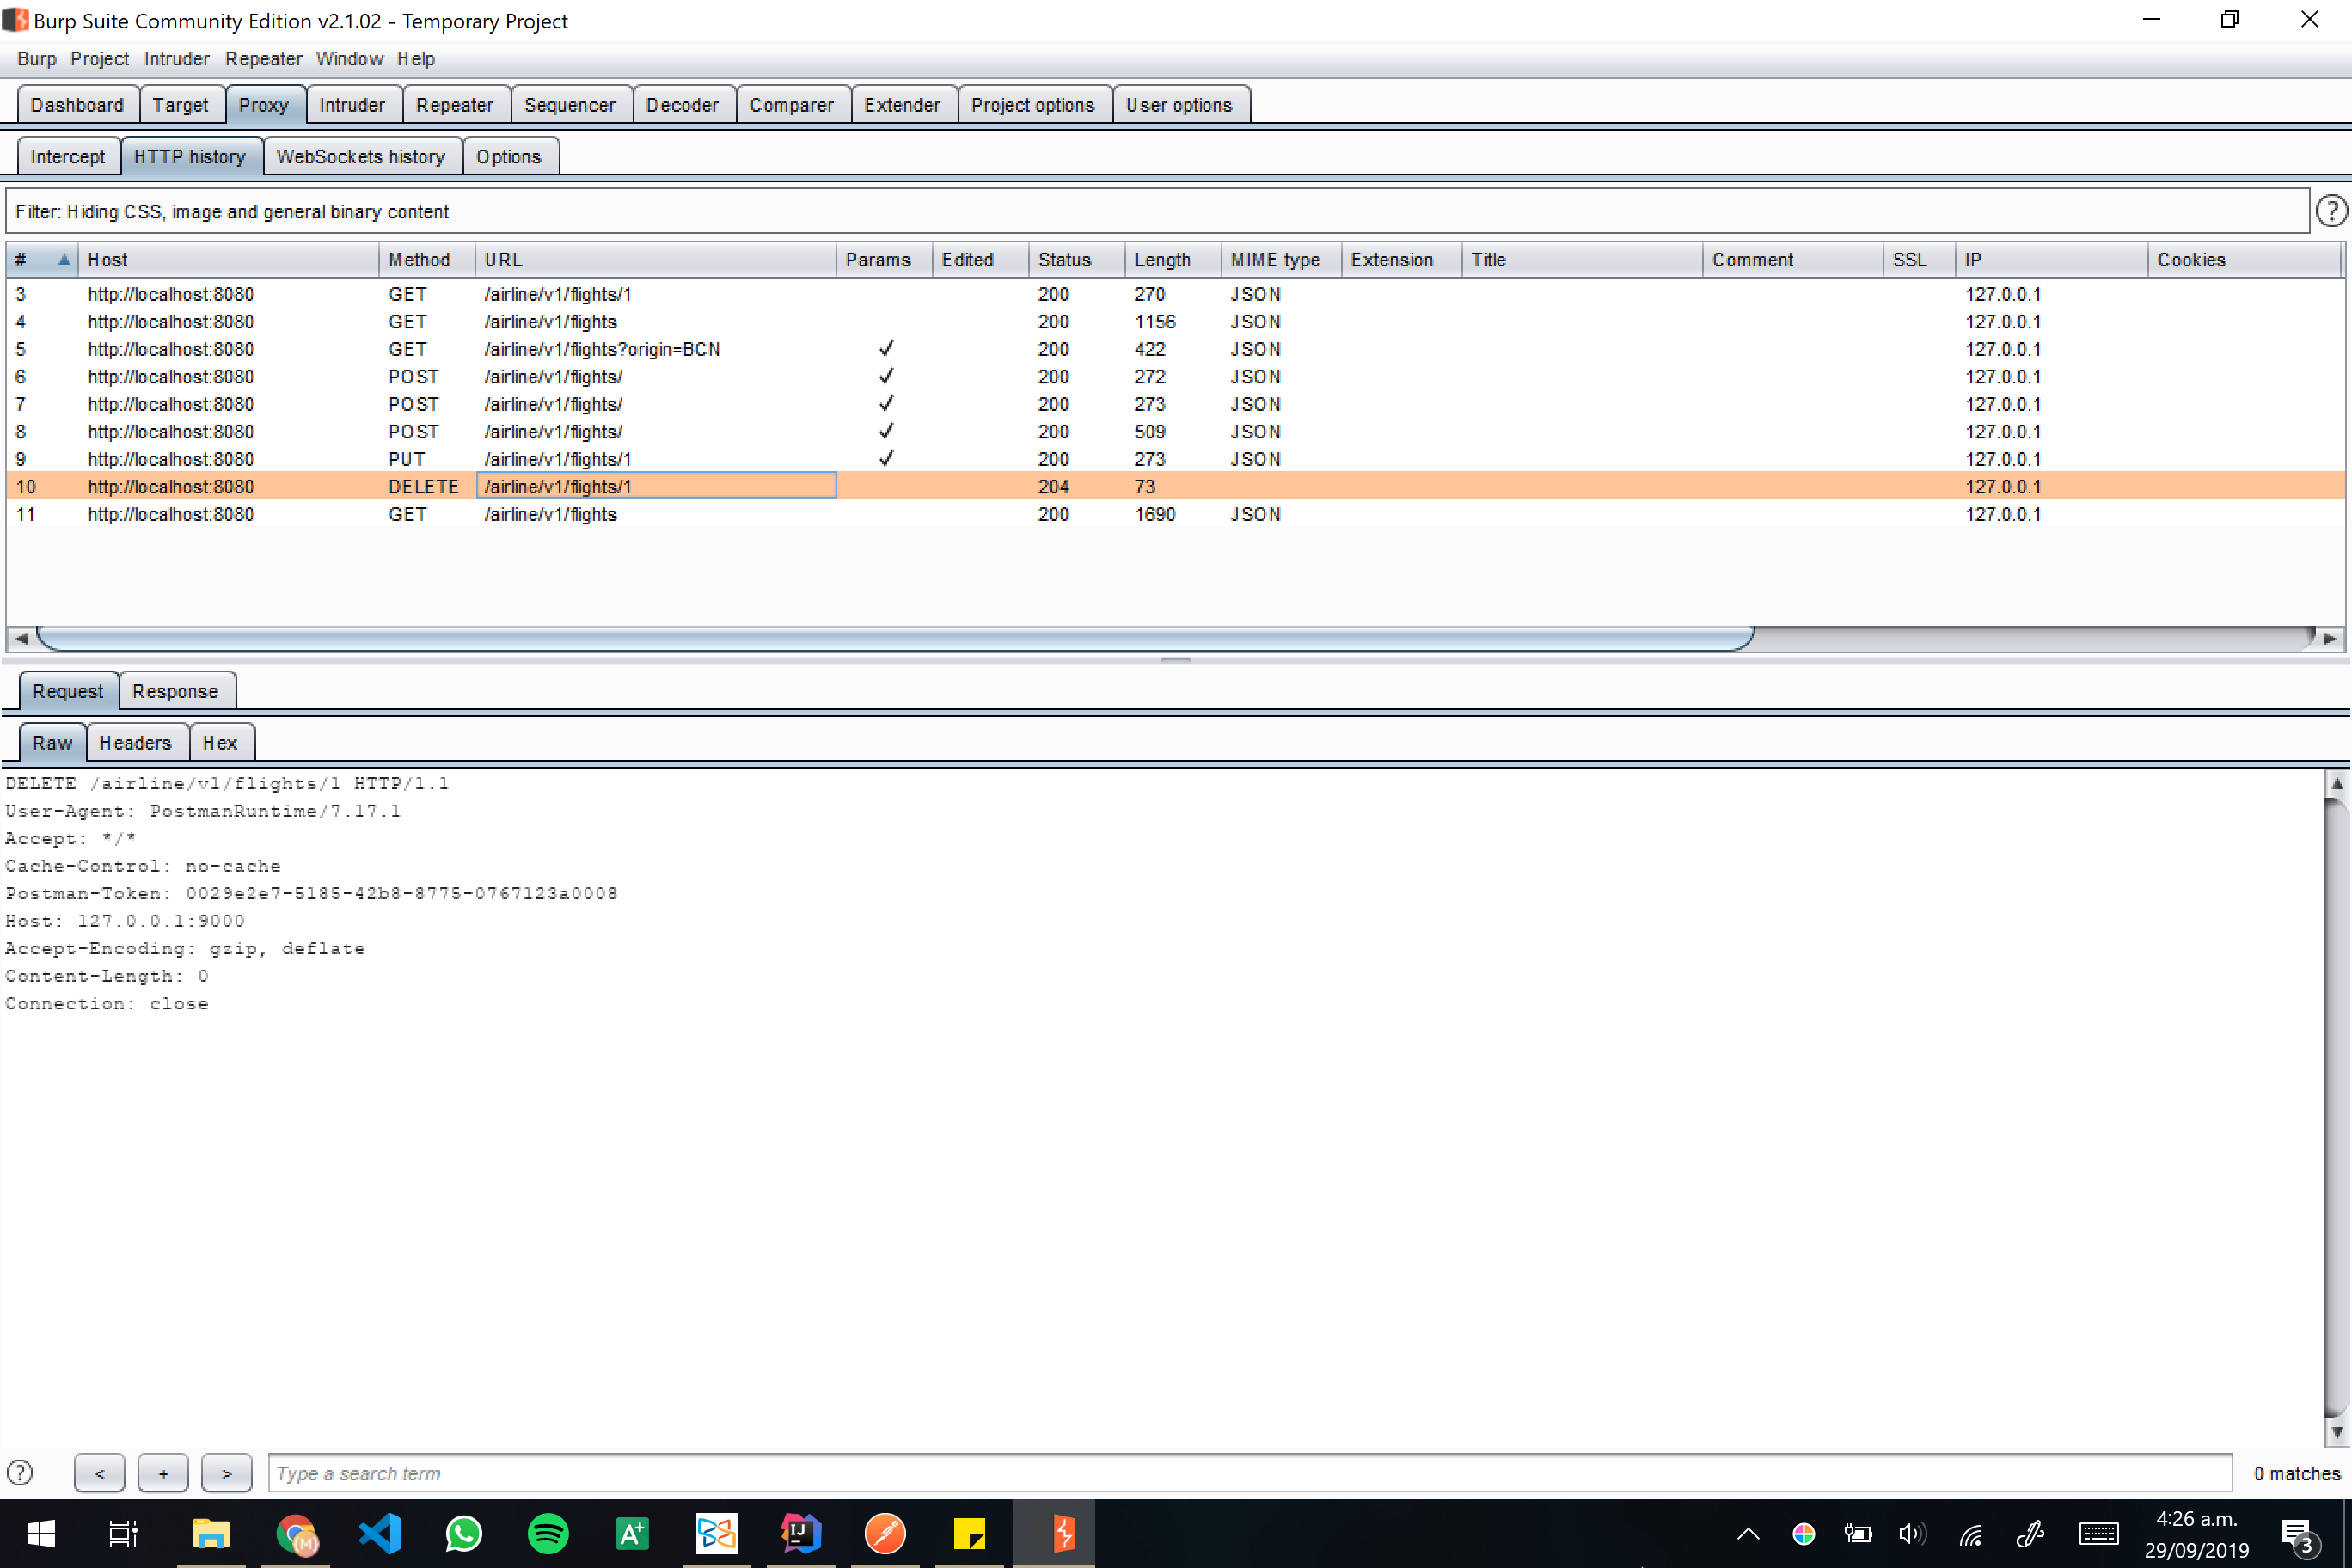 Burp screenshot 19